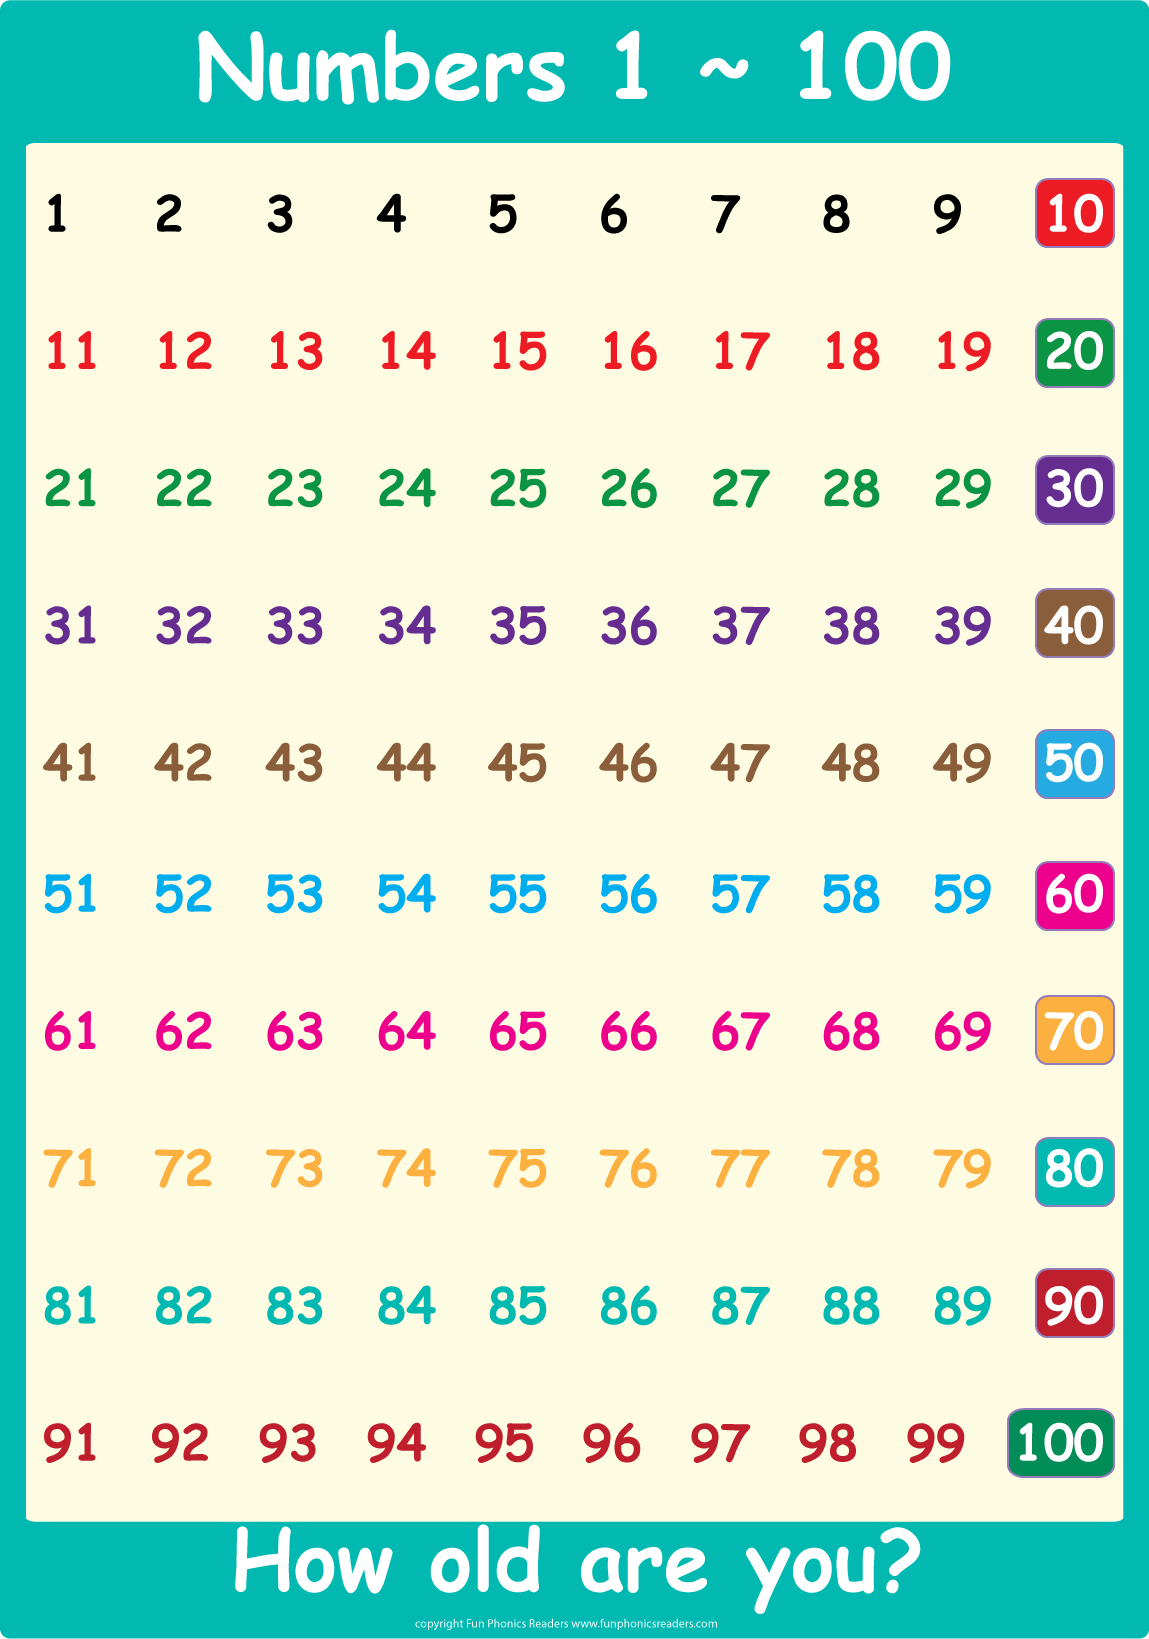 photograph regarding Printable Numbers 1-100 called Quantity Chart 1-100 Khumo 100 range chart, 100 chart